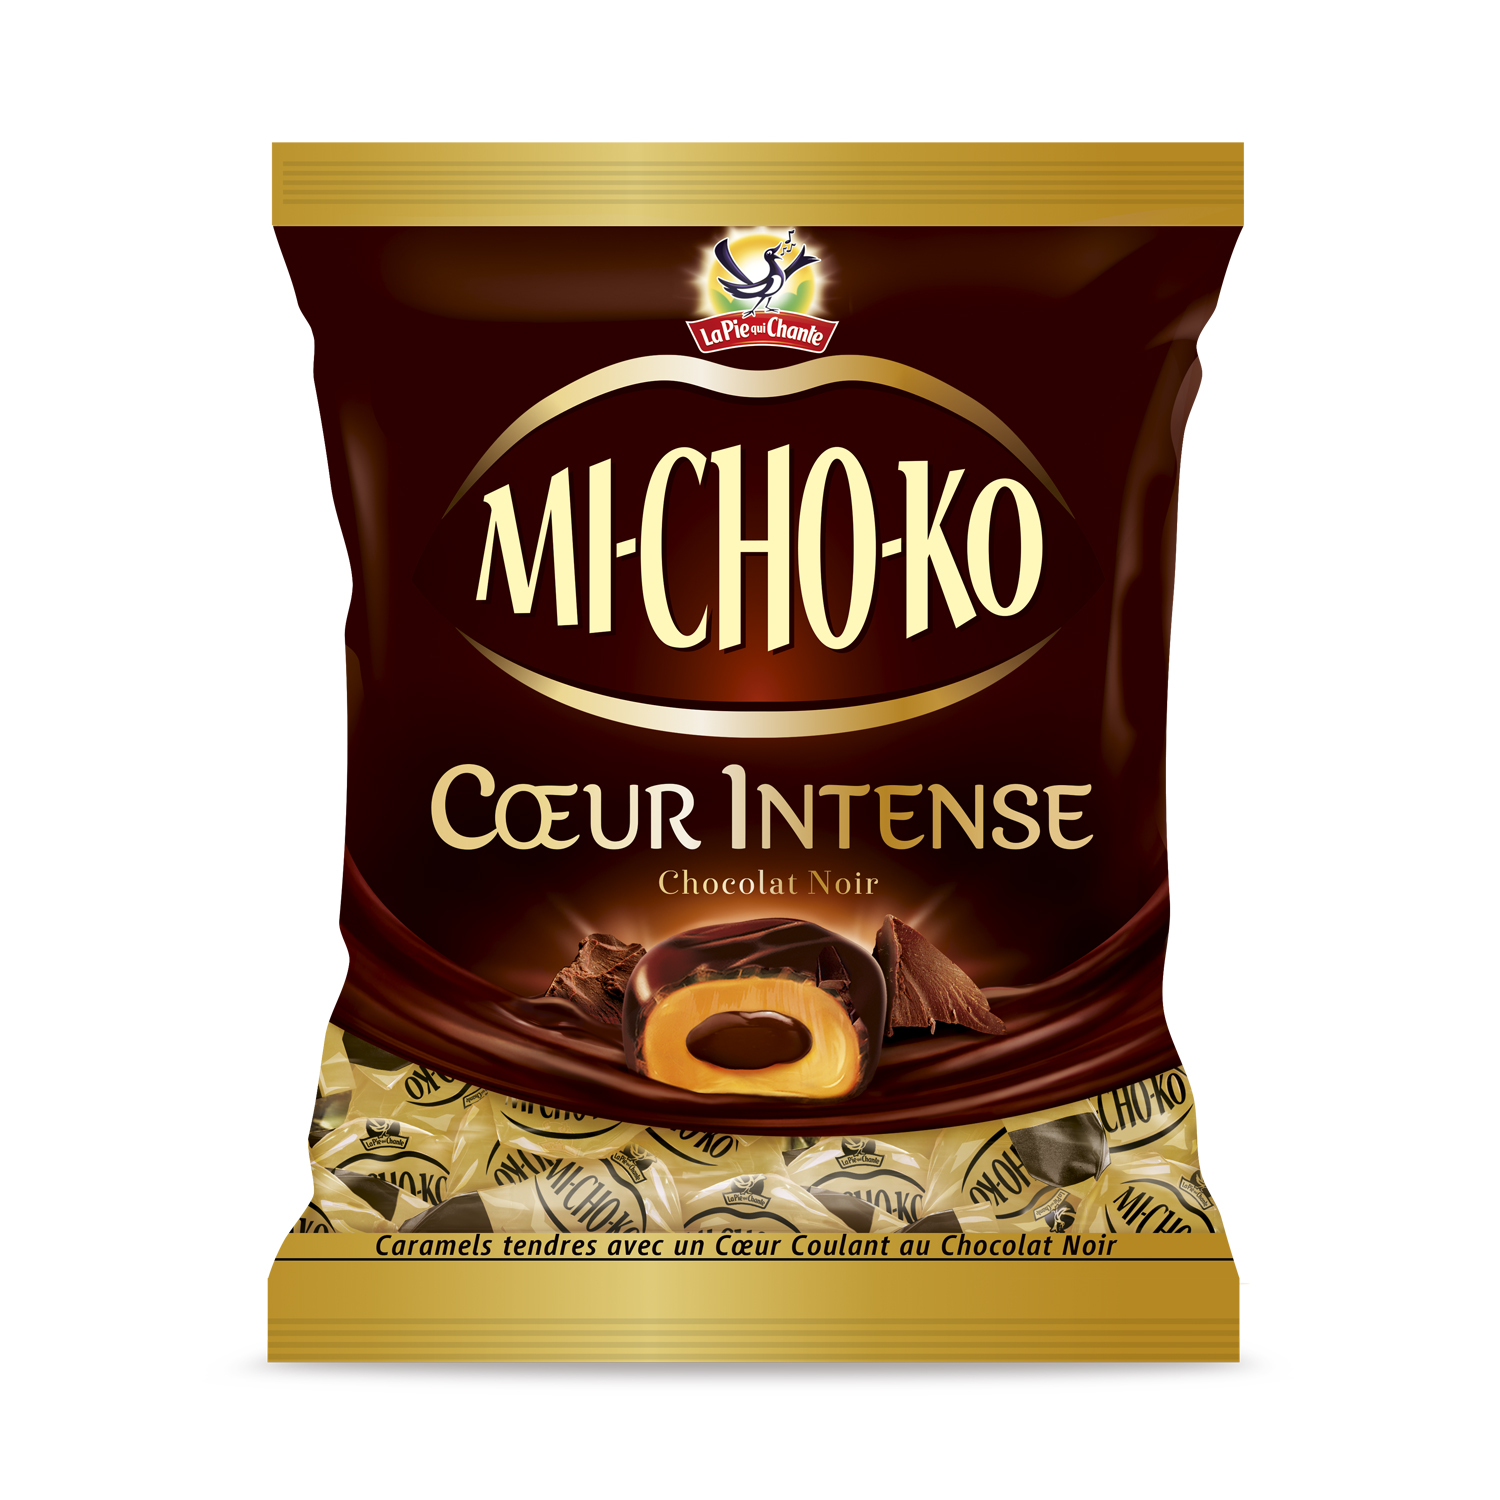 Michoko Coeur Intense